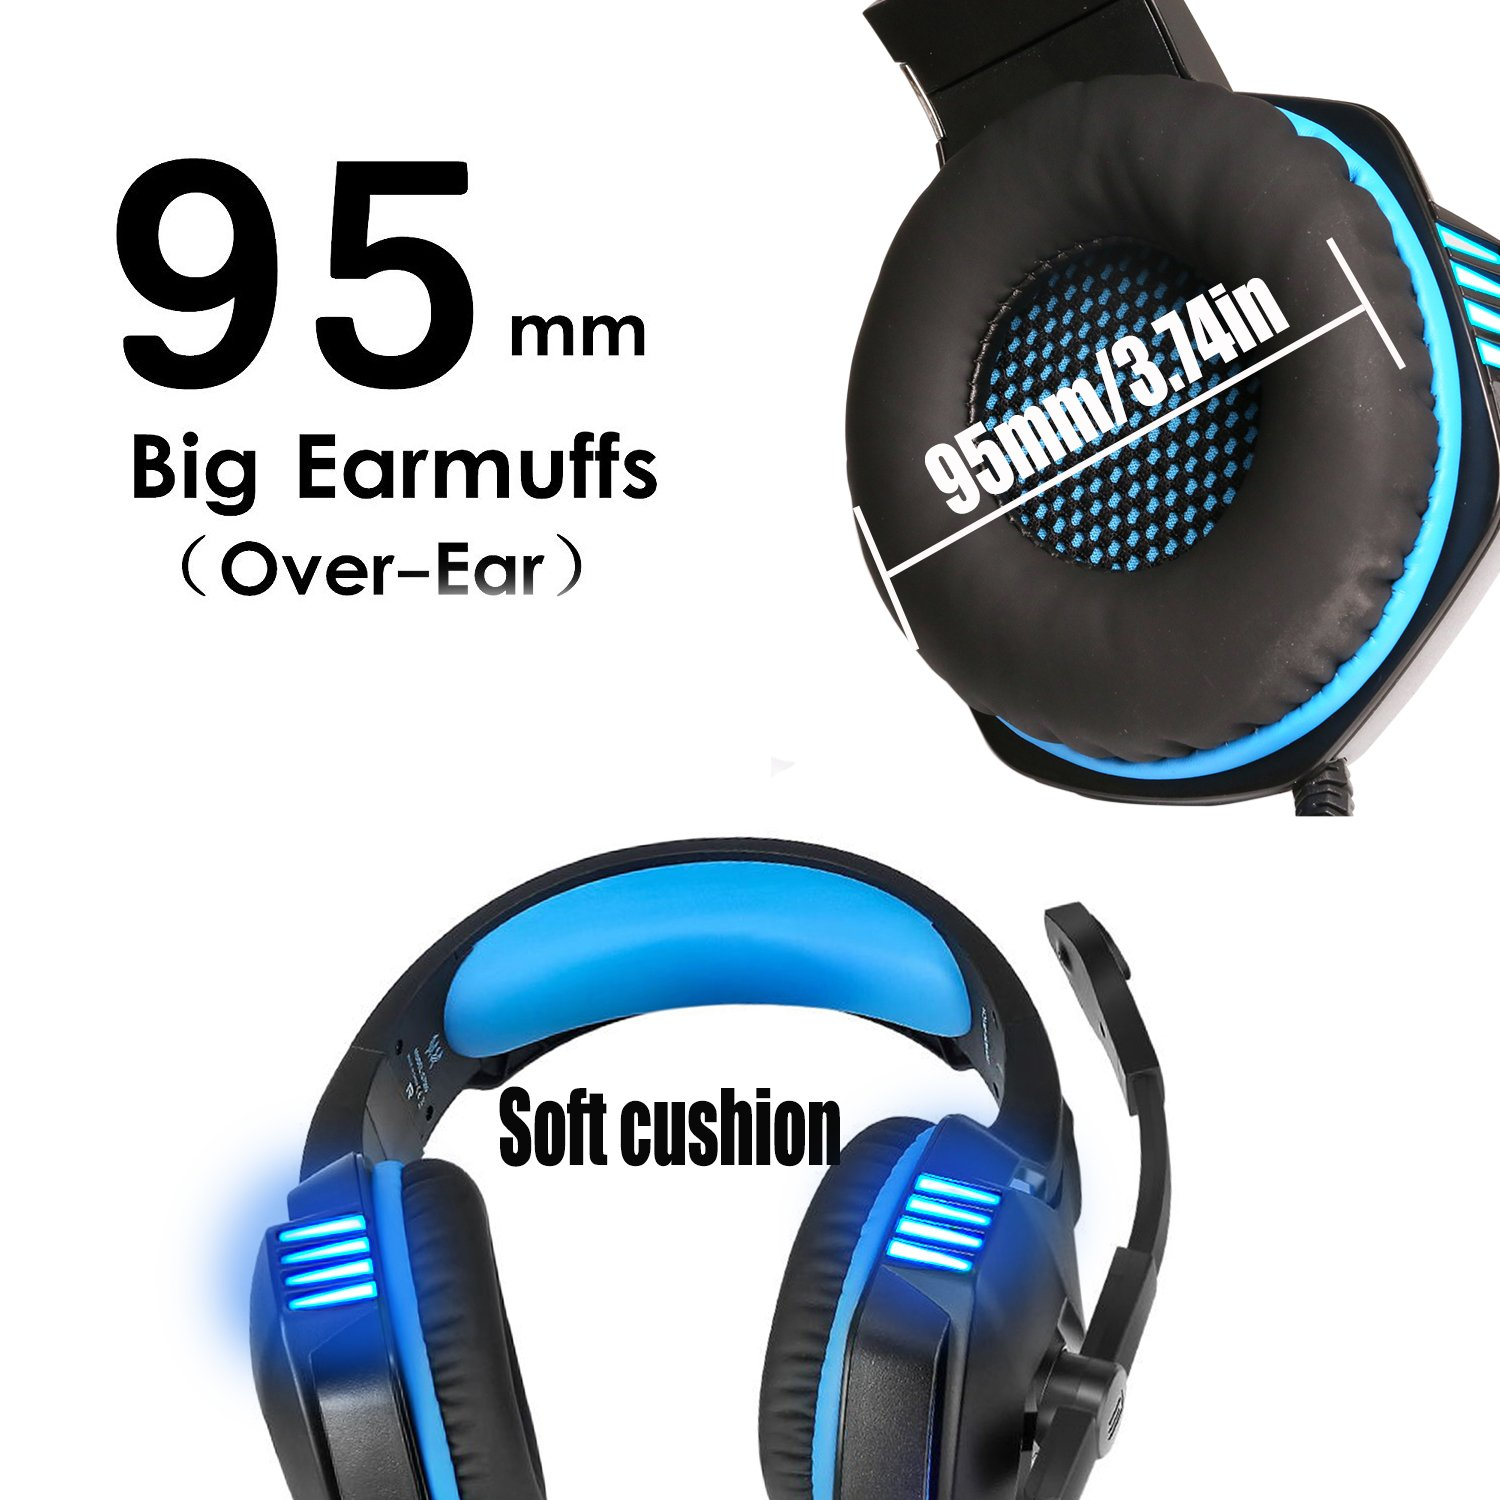 KJ-KayJI Gaming Headset for PS4 Xbox One Over Ear Gaming Headphones with Mic Stereo Bass Surround Noise Reduction,LED Lights and Volume Control for Laptop PC Mac IPad Computer Smartphones Xbox (Blue) by KJ-KayJI (Image #4)